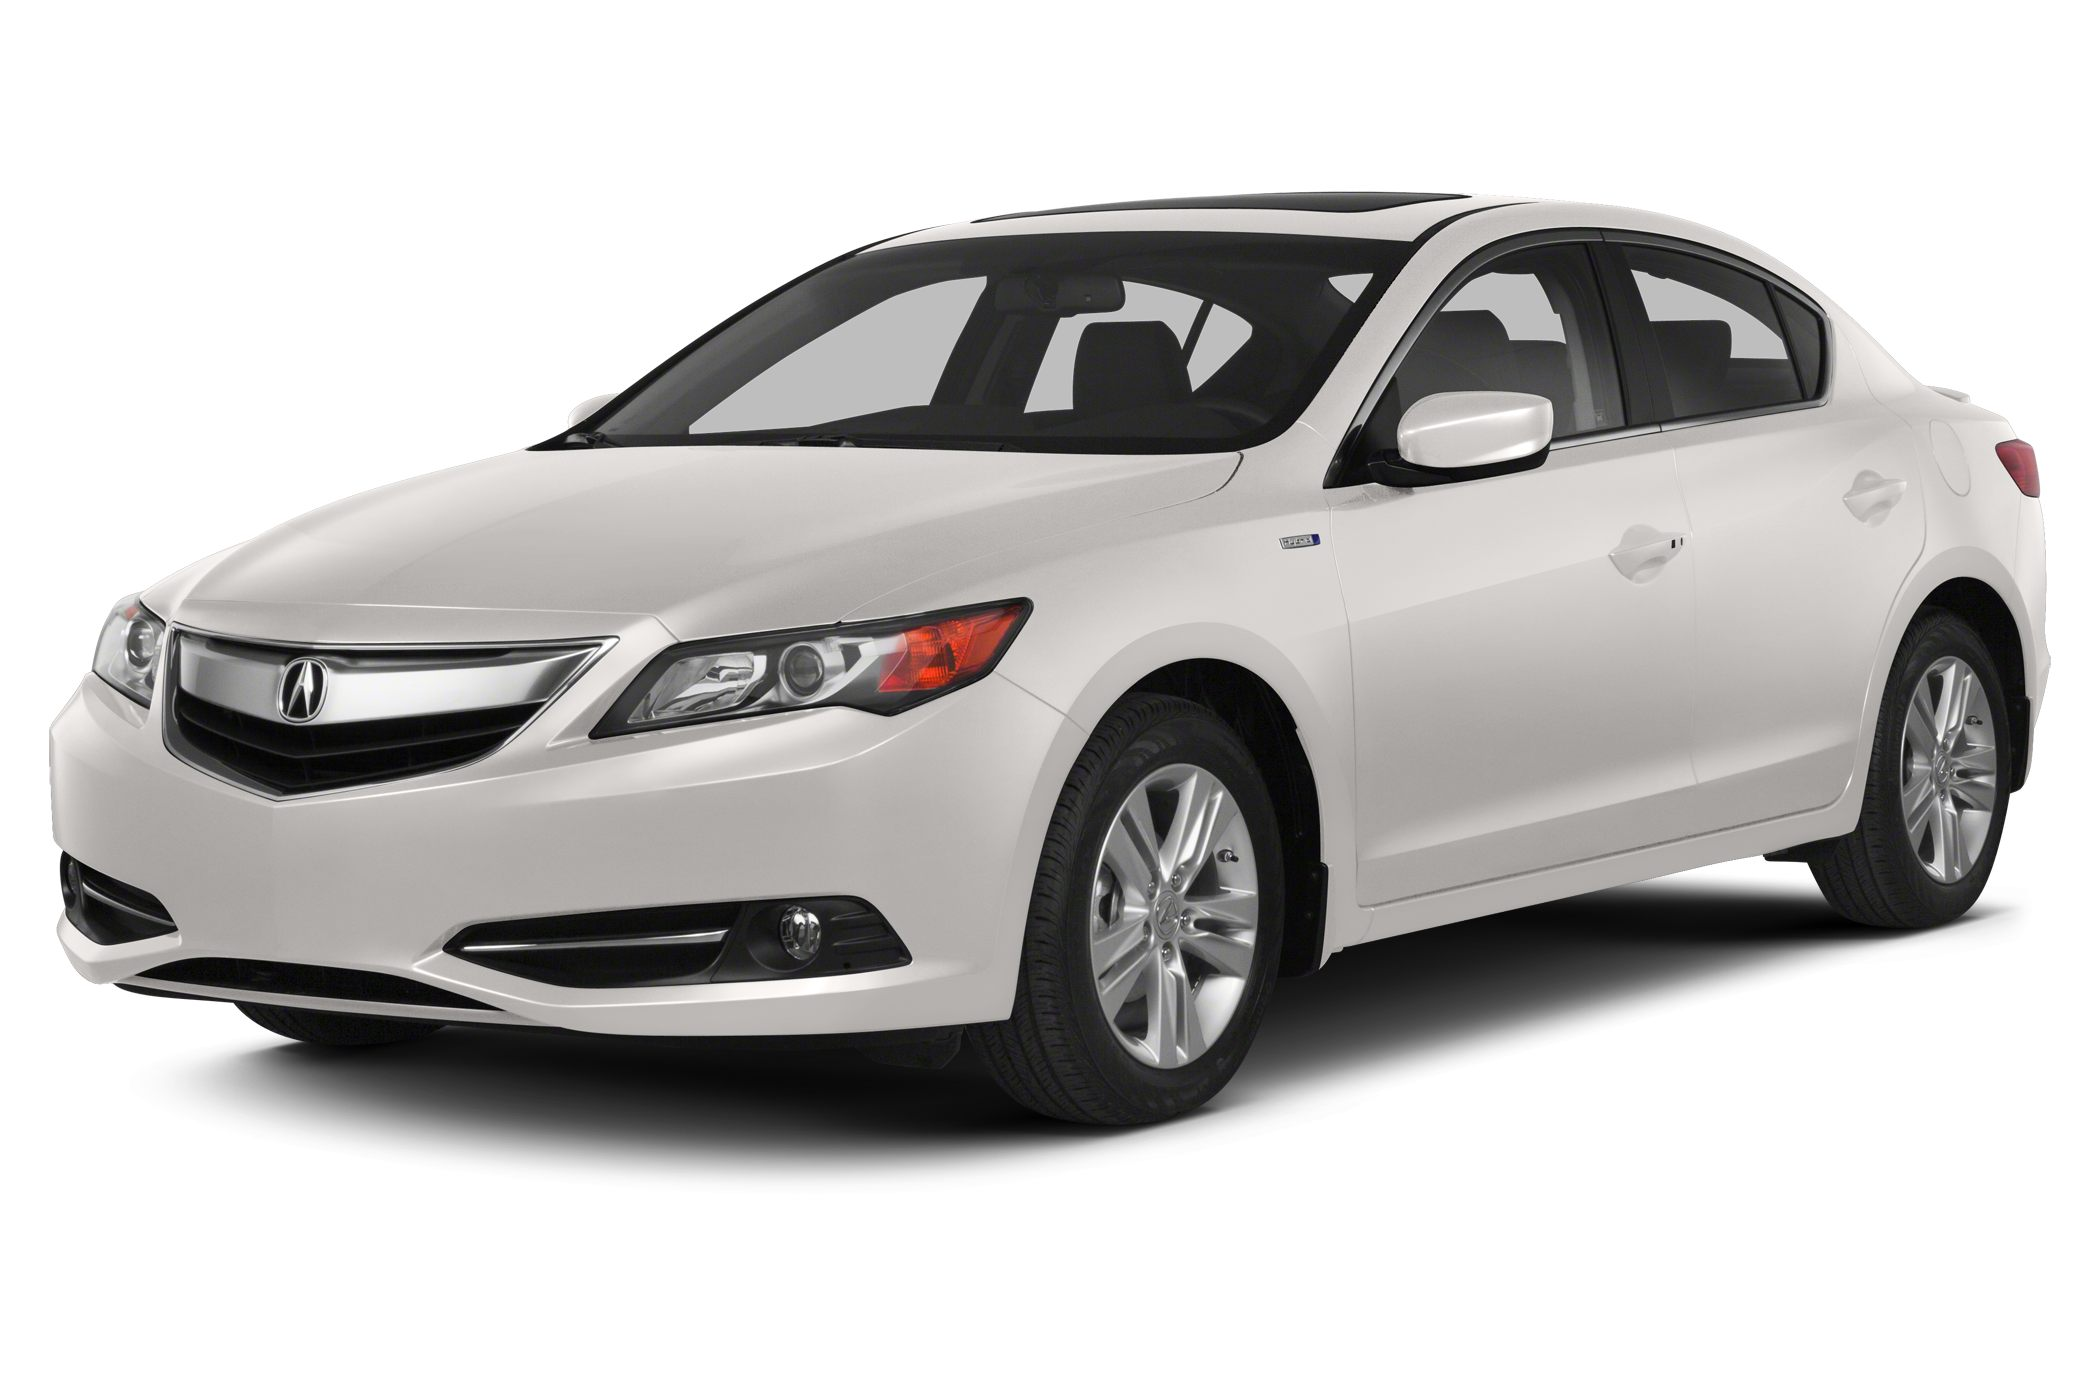 2013 Acura ILX Hybrid 1.5L Sedan for sale in Sioux Falls for $24,949 with 5,200 miles.